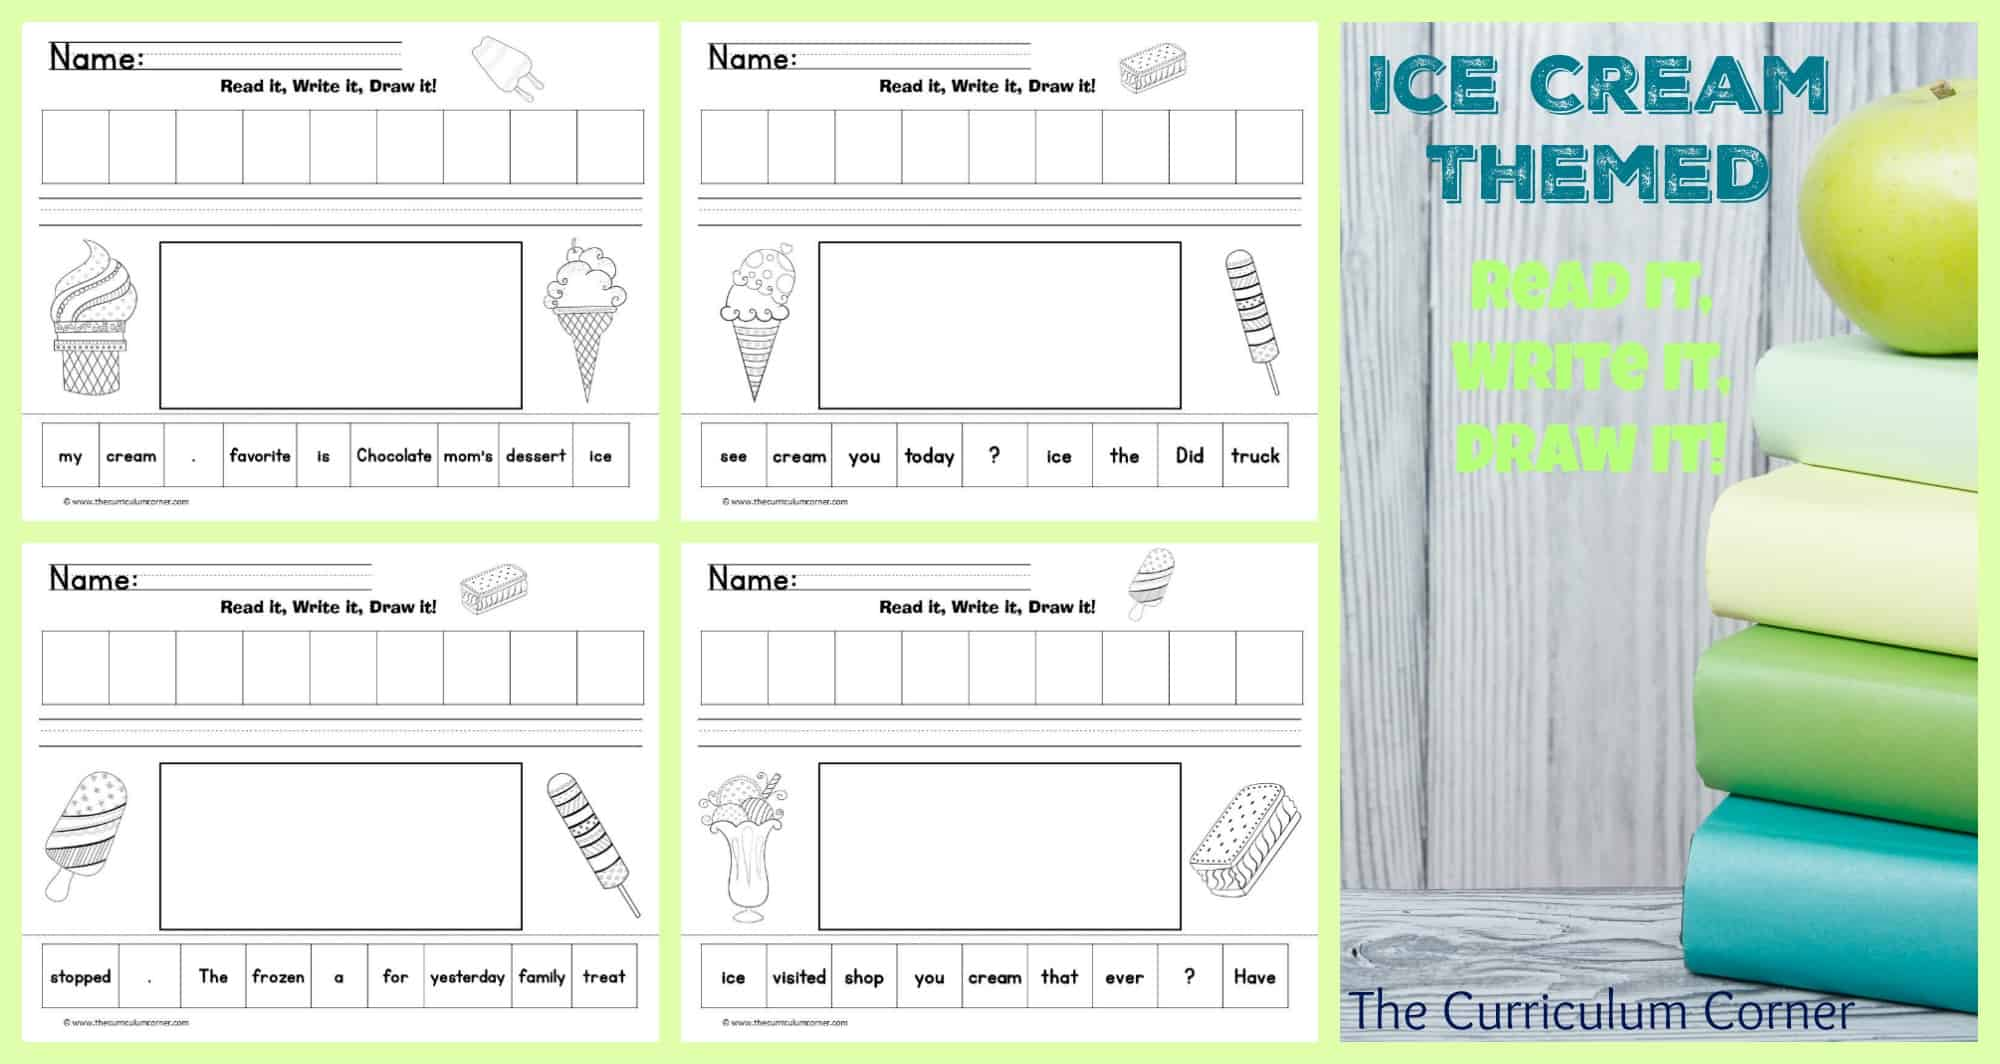 Ice Cream Fun Read, Write & Draw It!